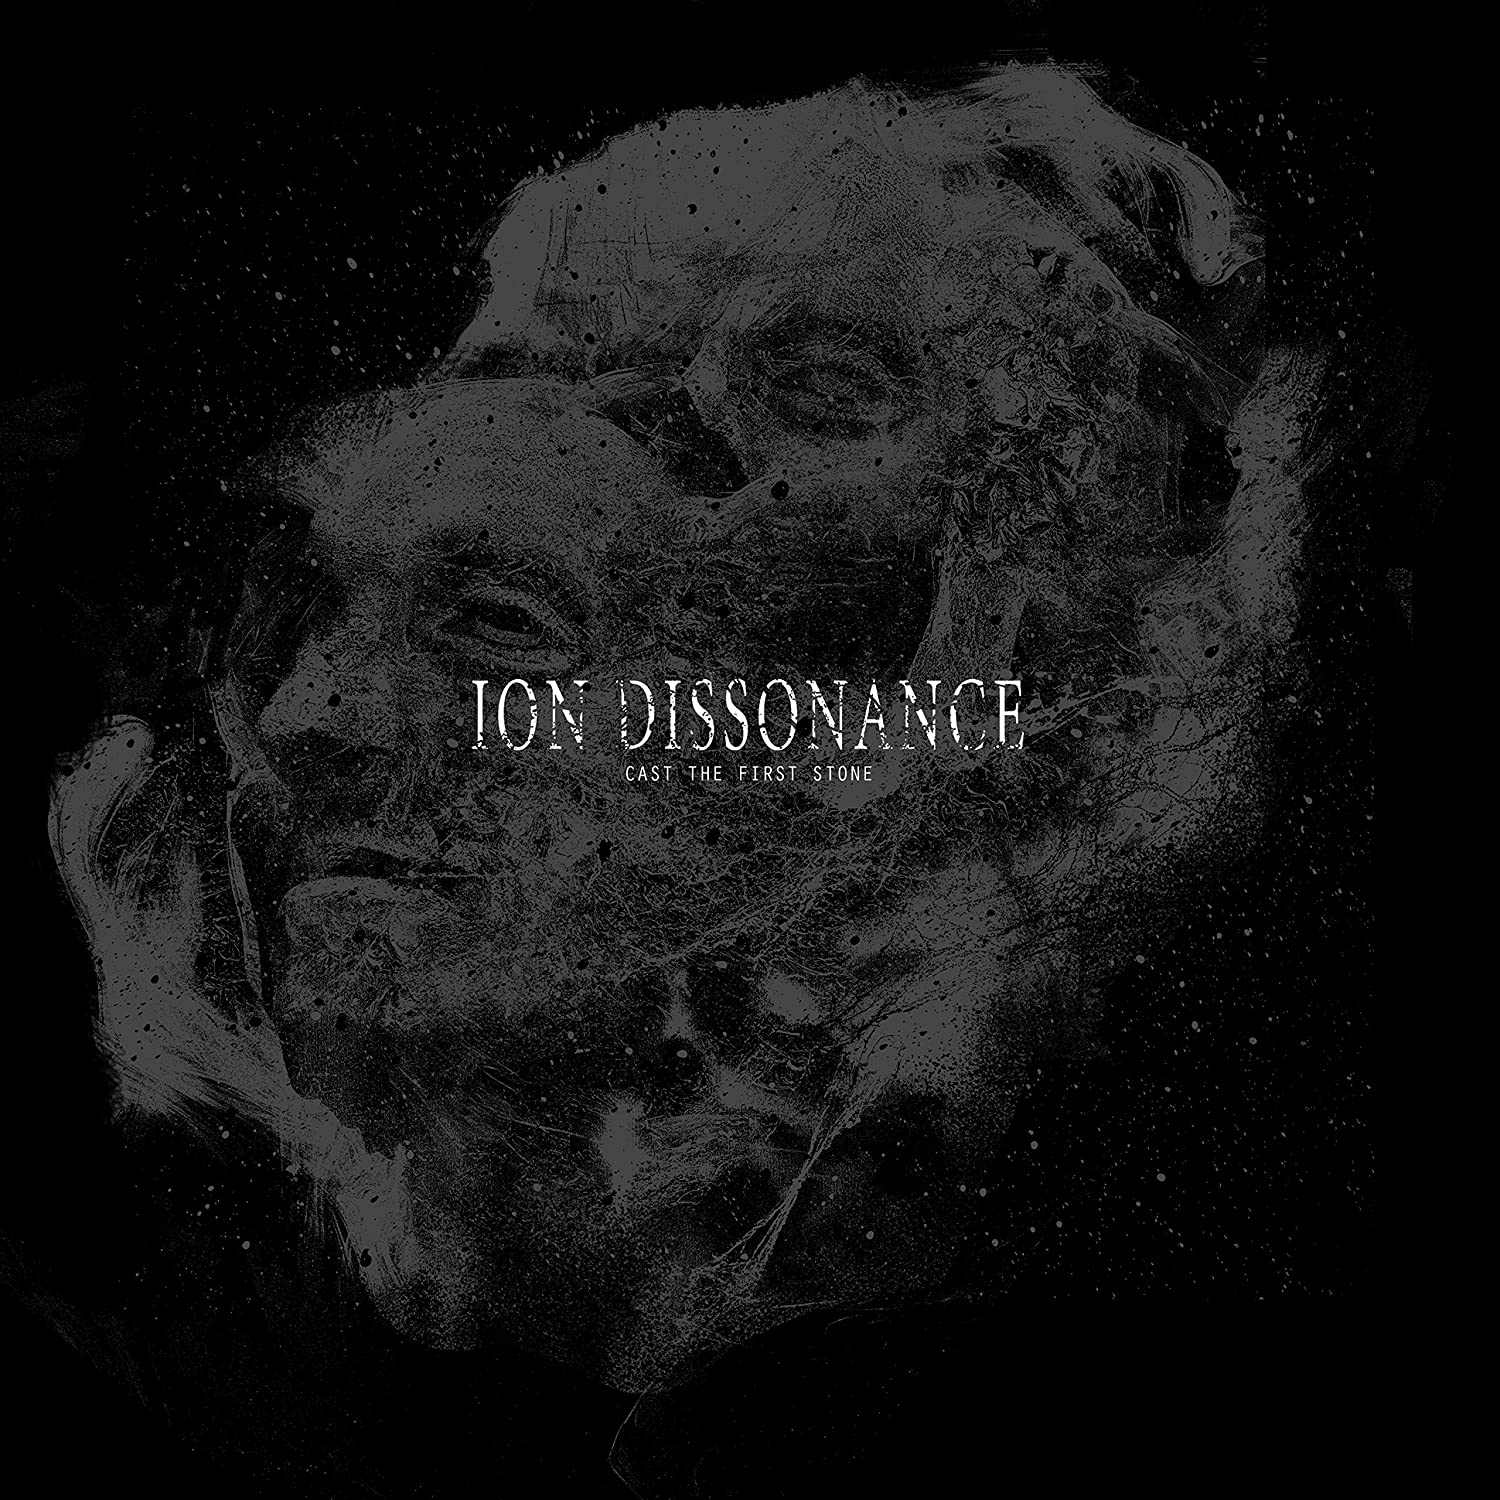 Cast the First Stone by Ion Dissonance